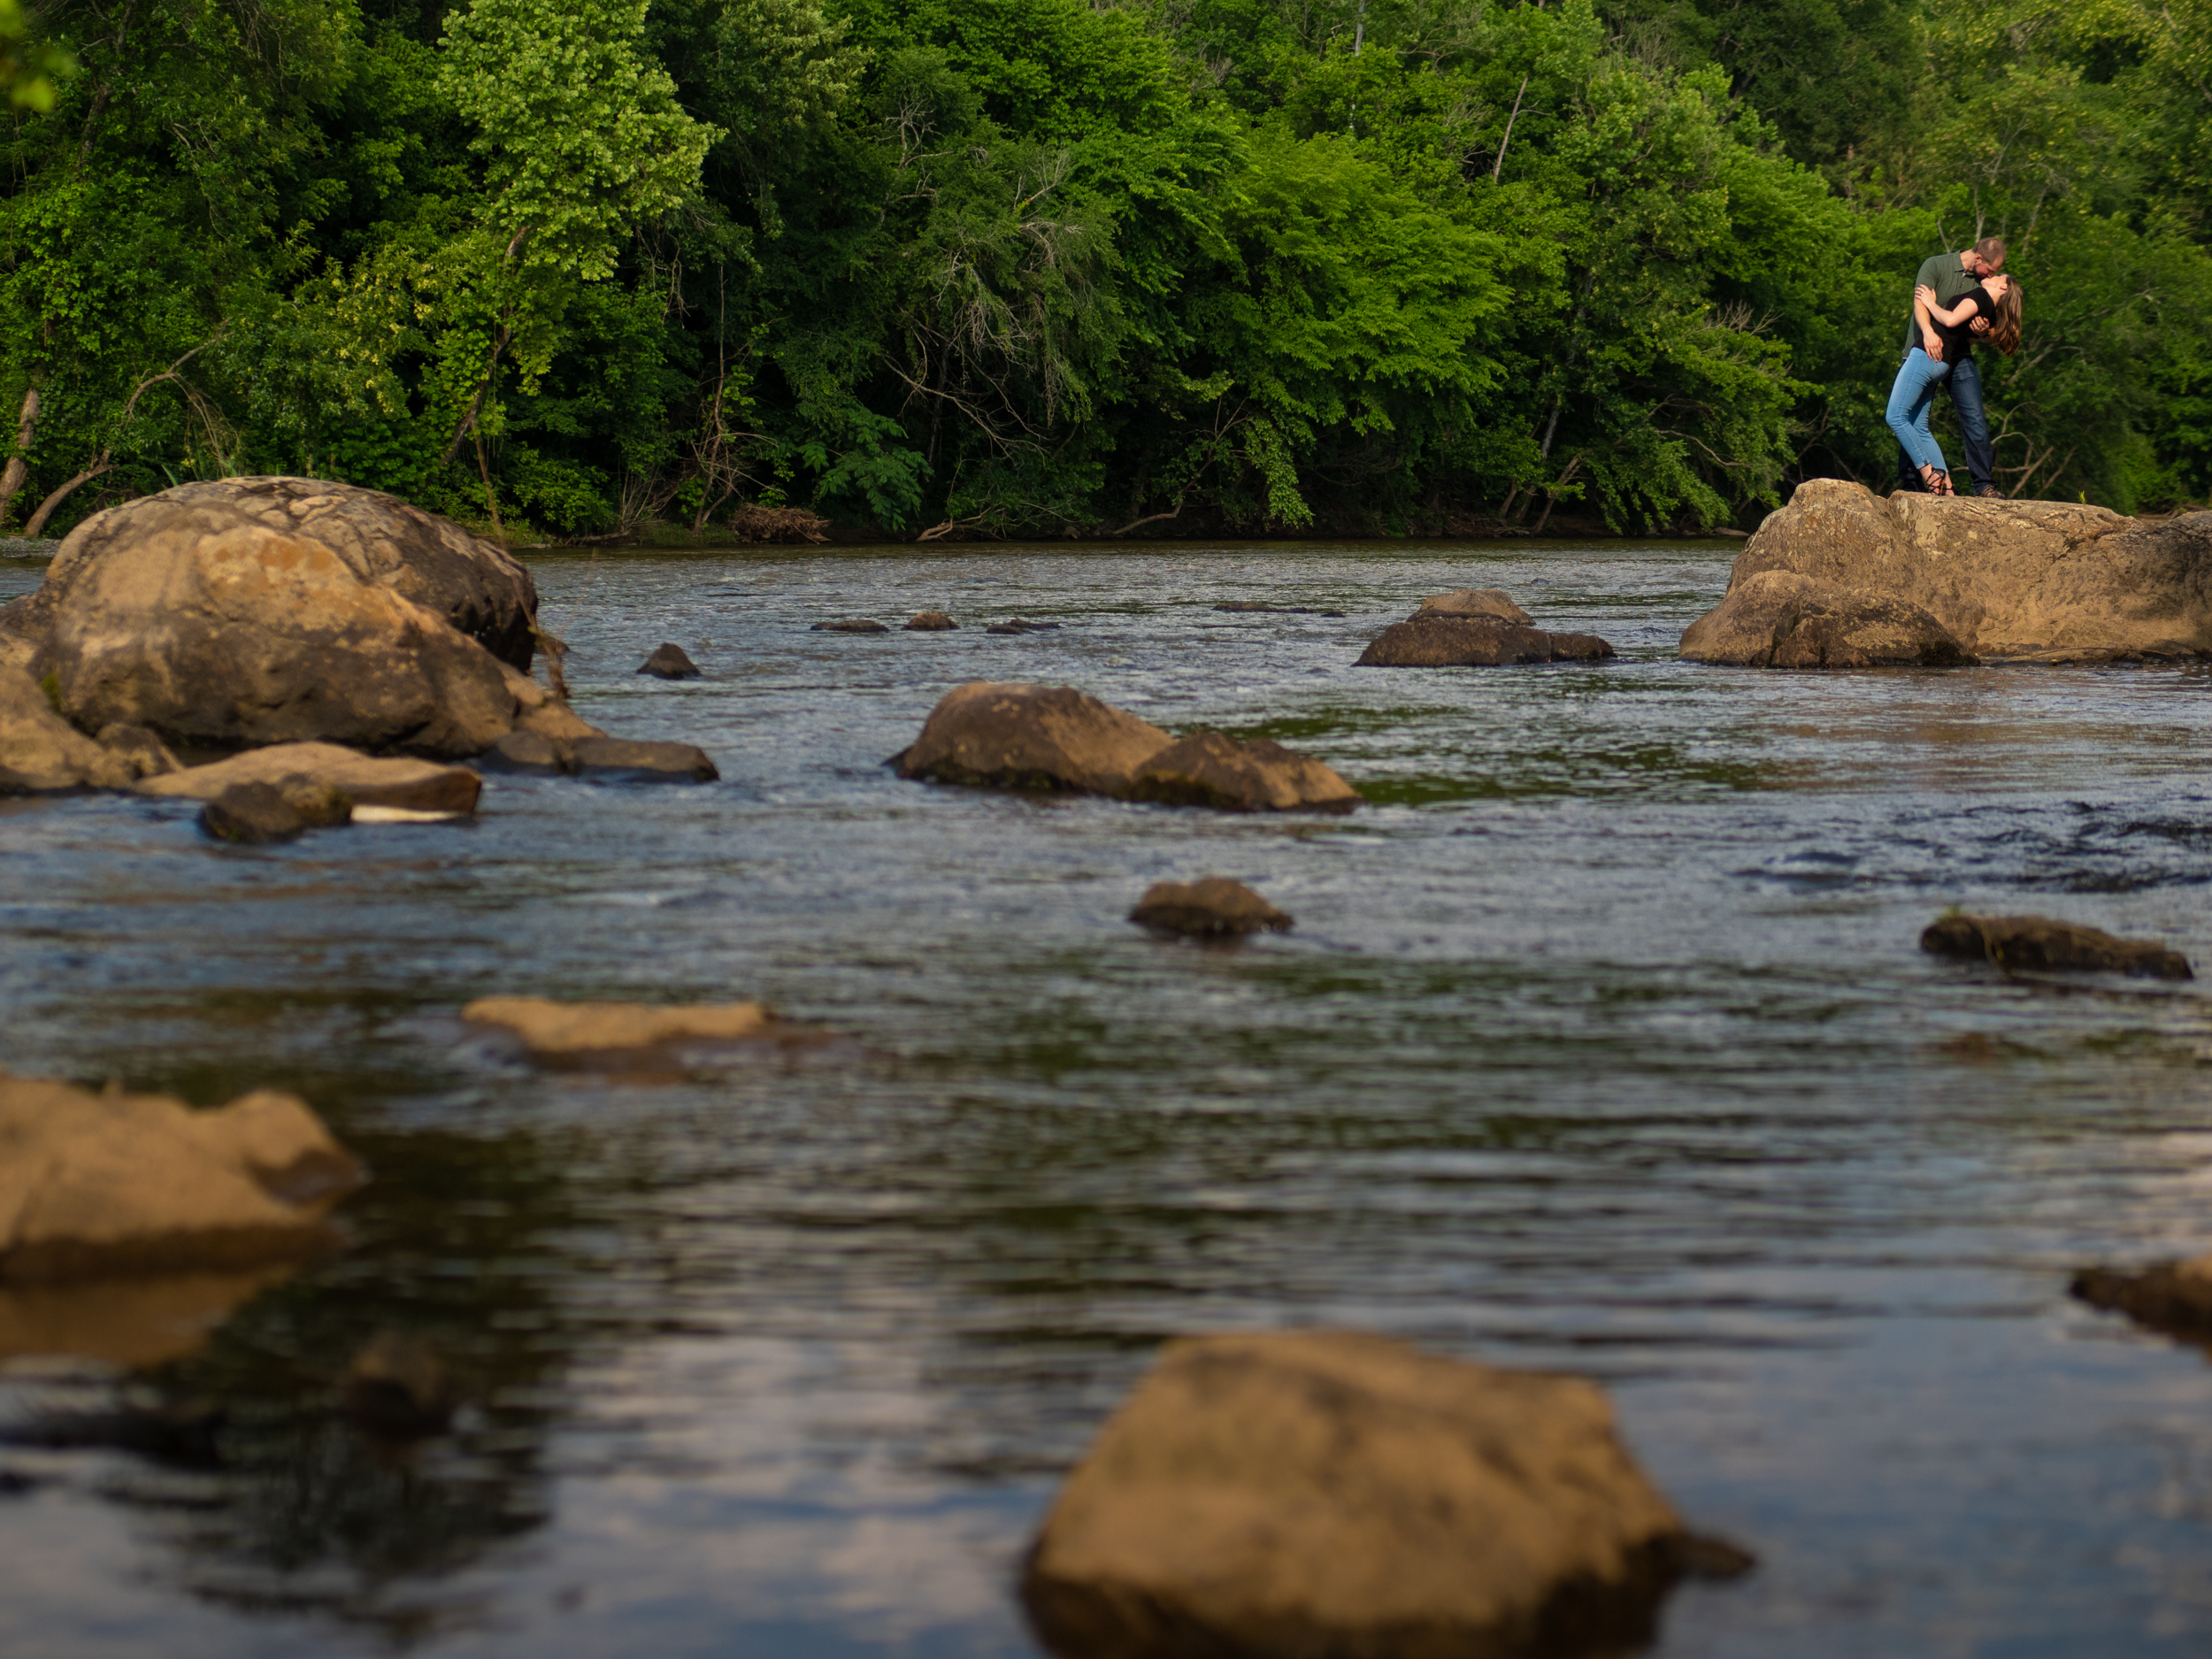 saxapahaw-brewery-river-chapel hill-carrboro-engagement-portraits-wedding-emily-brad-30285.jpg